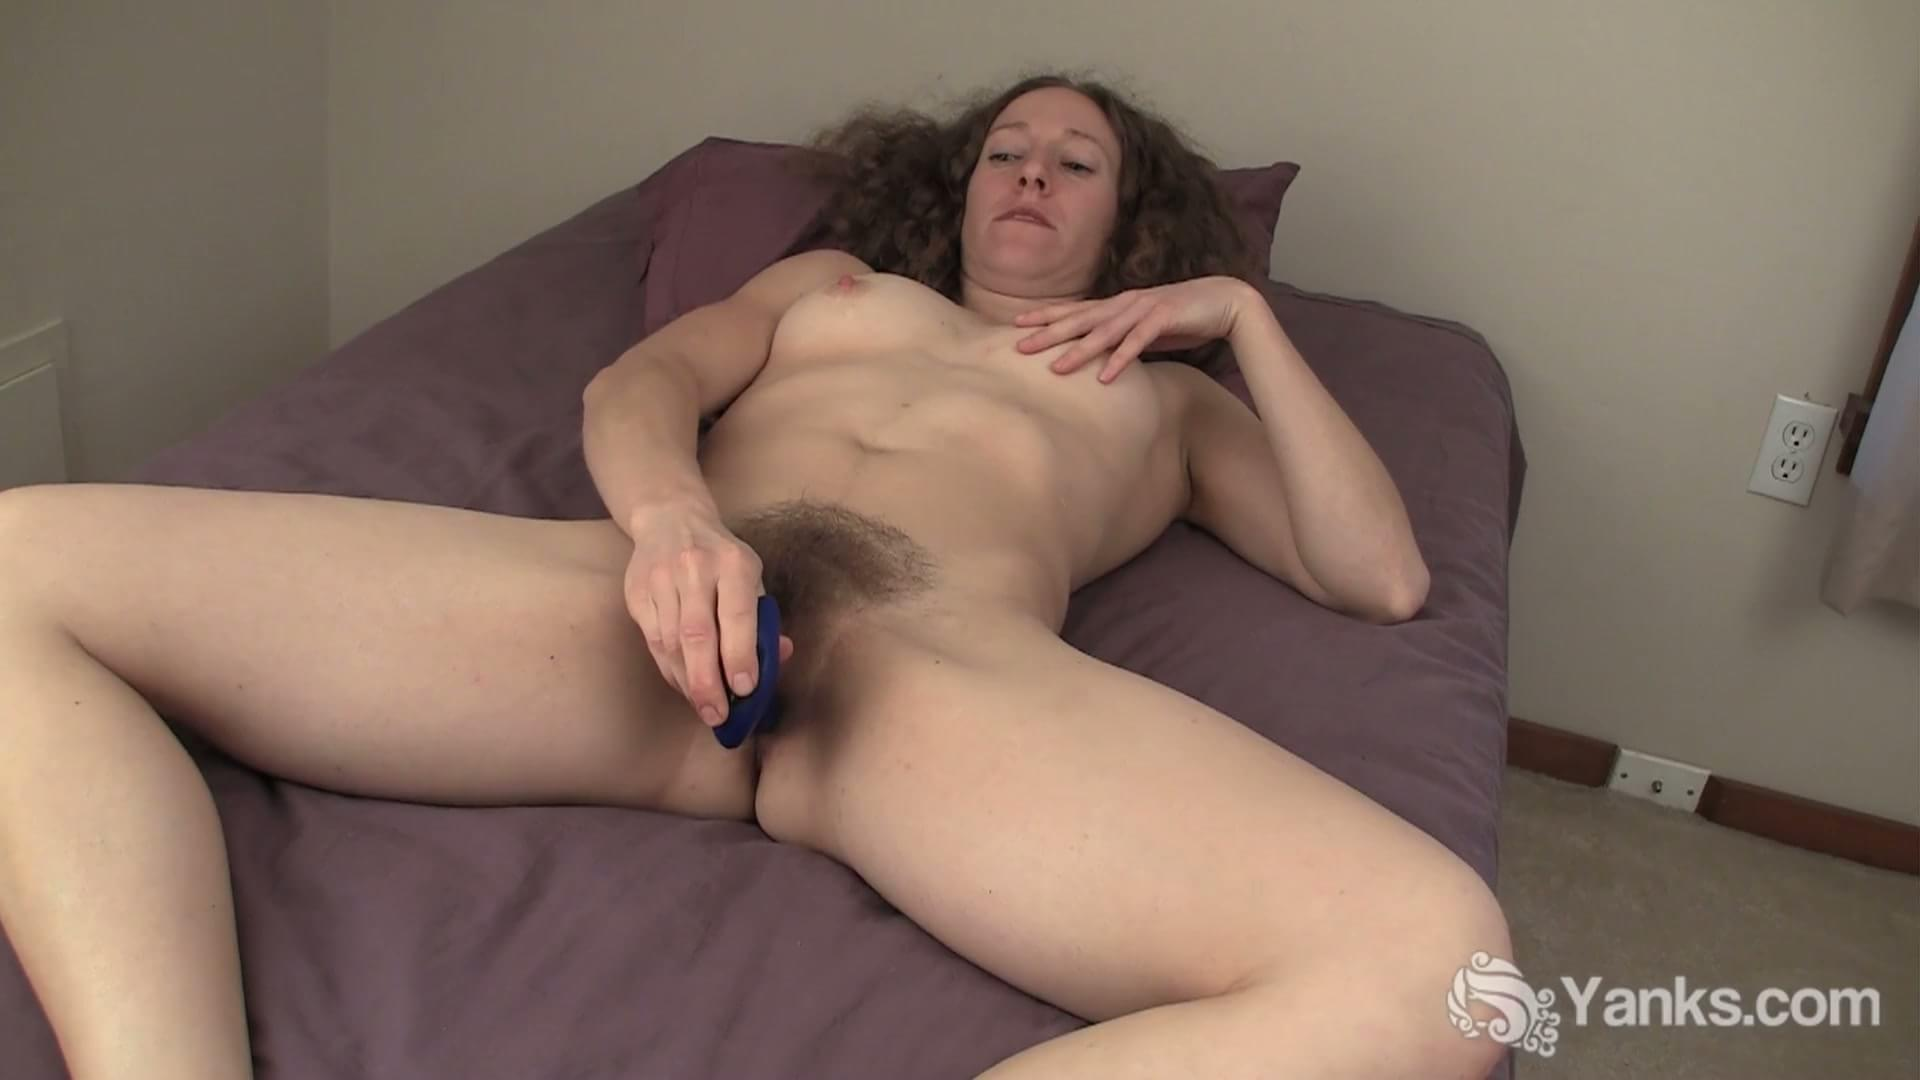 Curious topic Horny lesbian dildo orgasms speaking, you